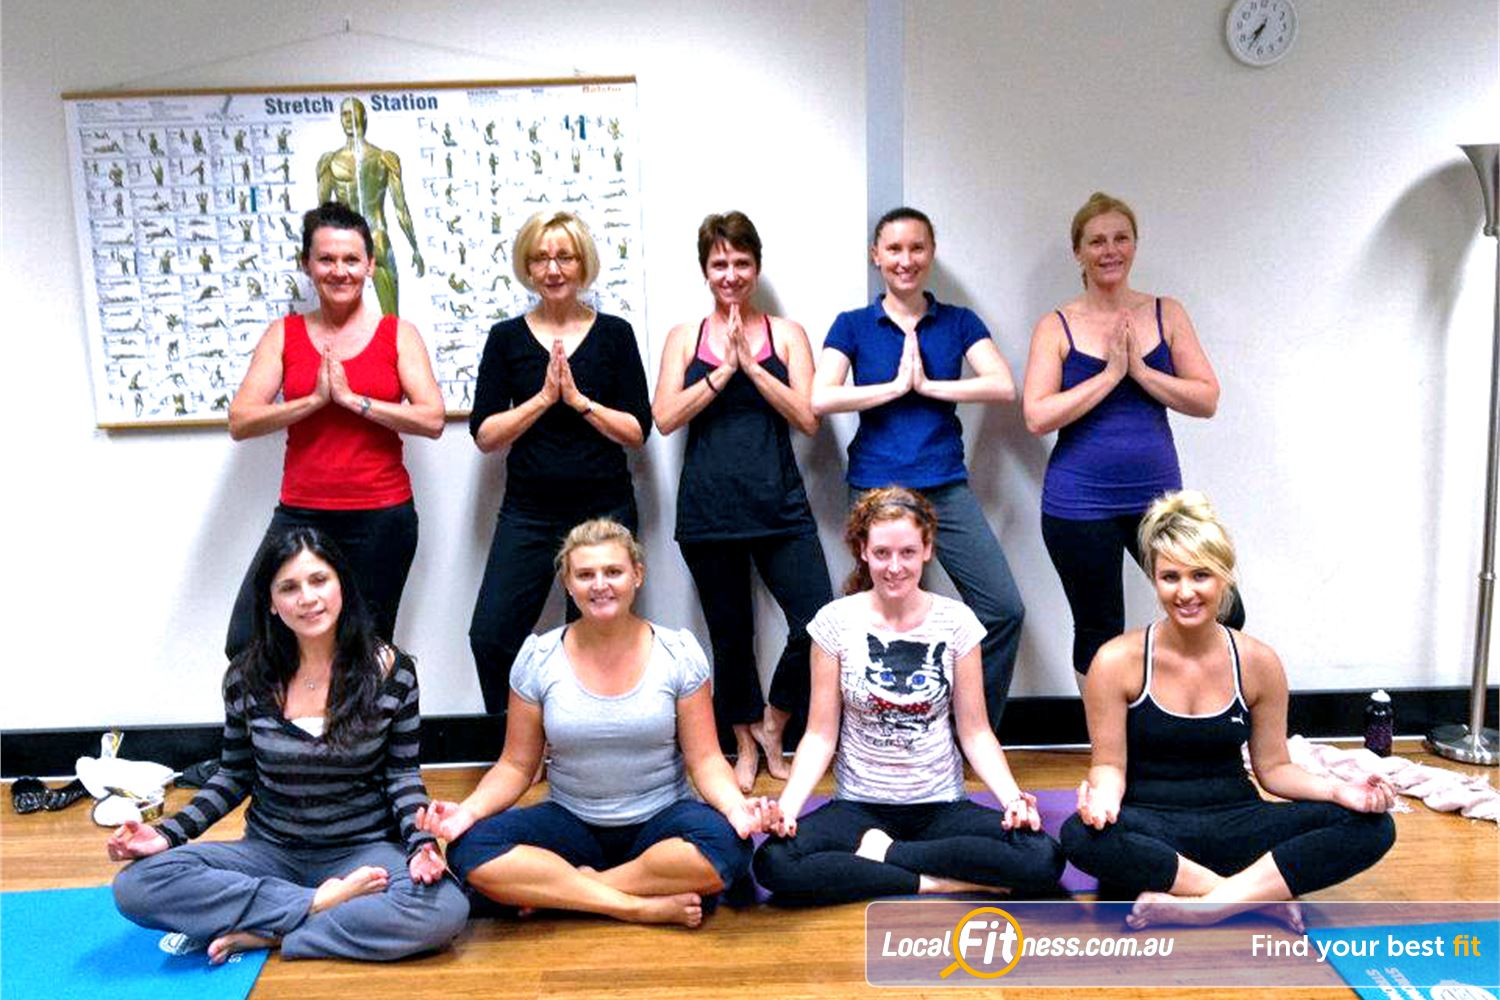 The Toorak Health Club Near Kooyong Join our Toorak Yoga claases and be part of the family.